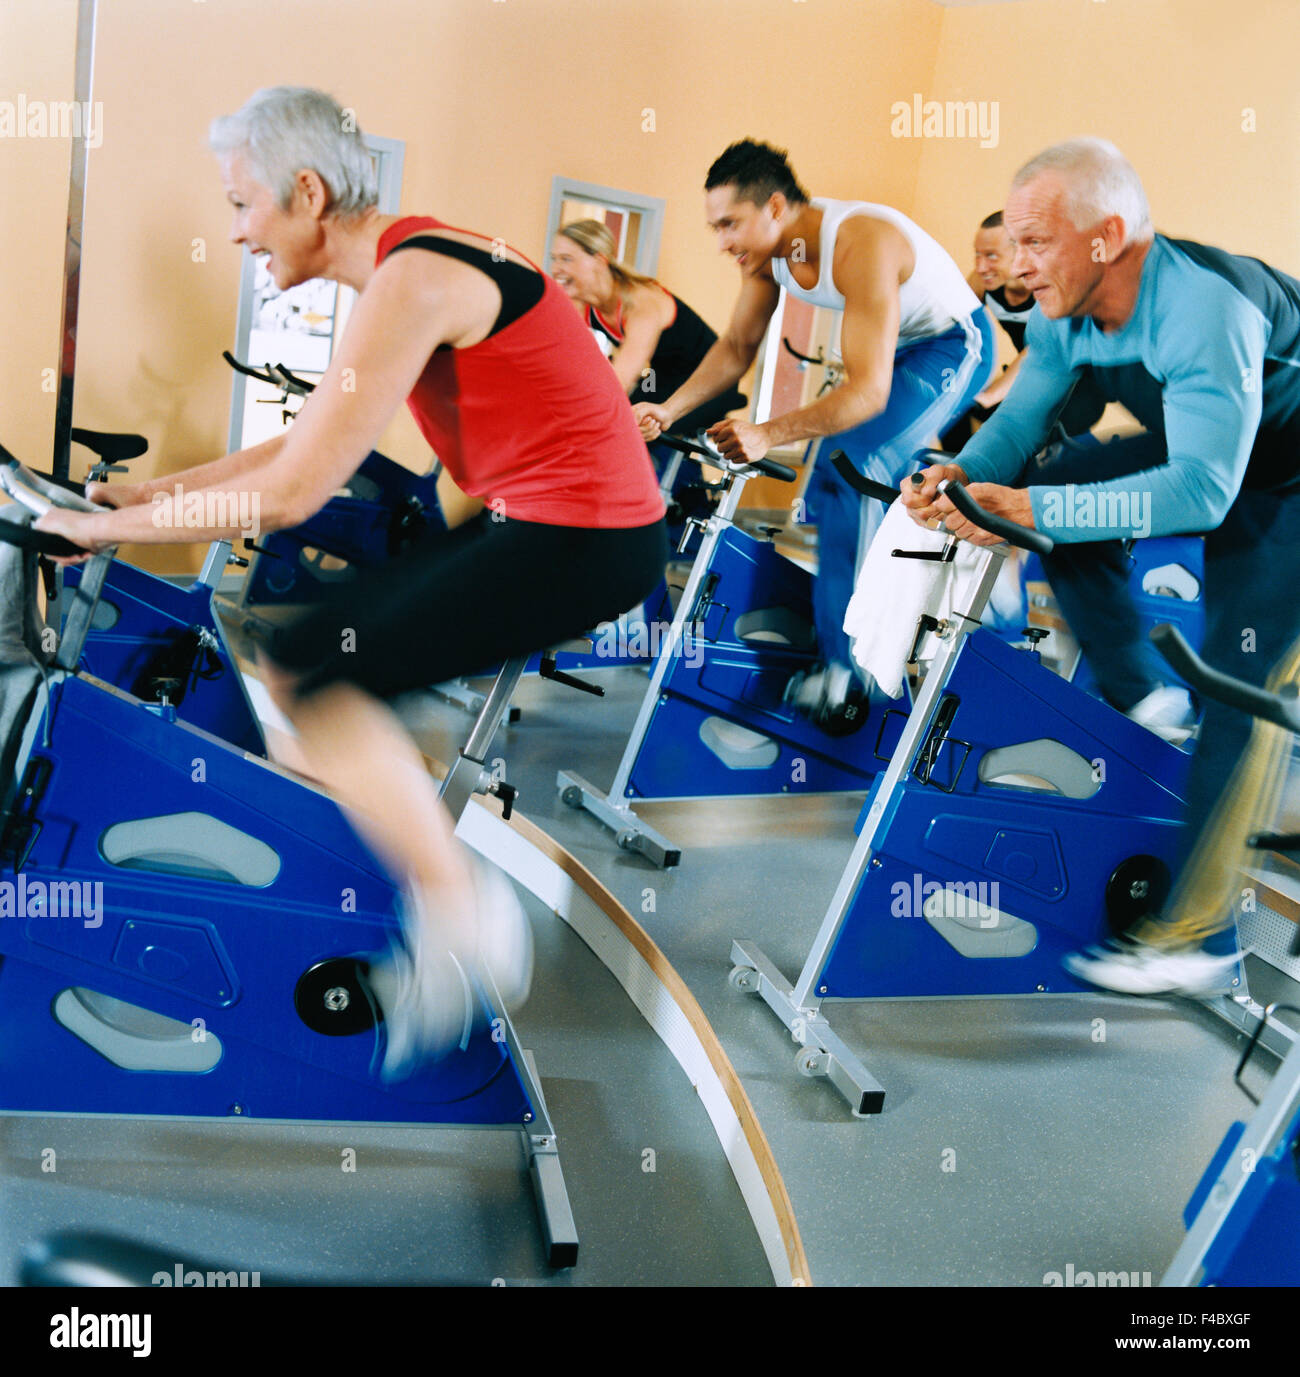 20-24 years 30-34 years activity adults only athlete bicycle bodybuilding color image cycle exercising five people - Stock Image